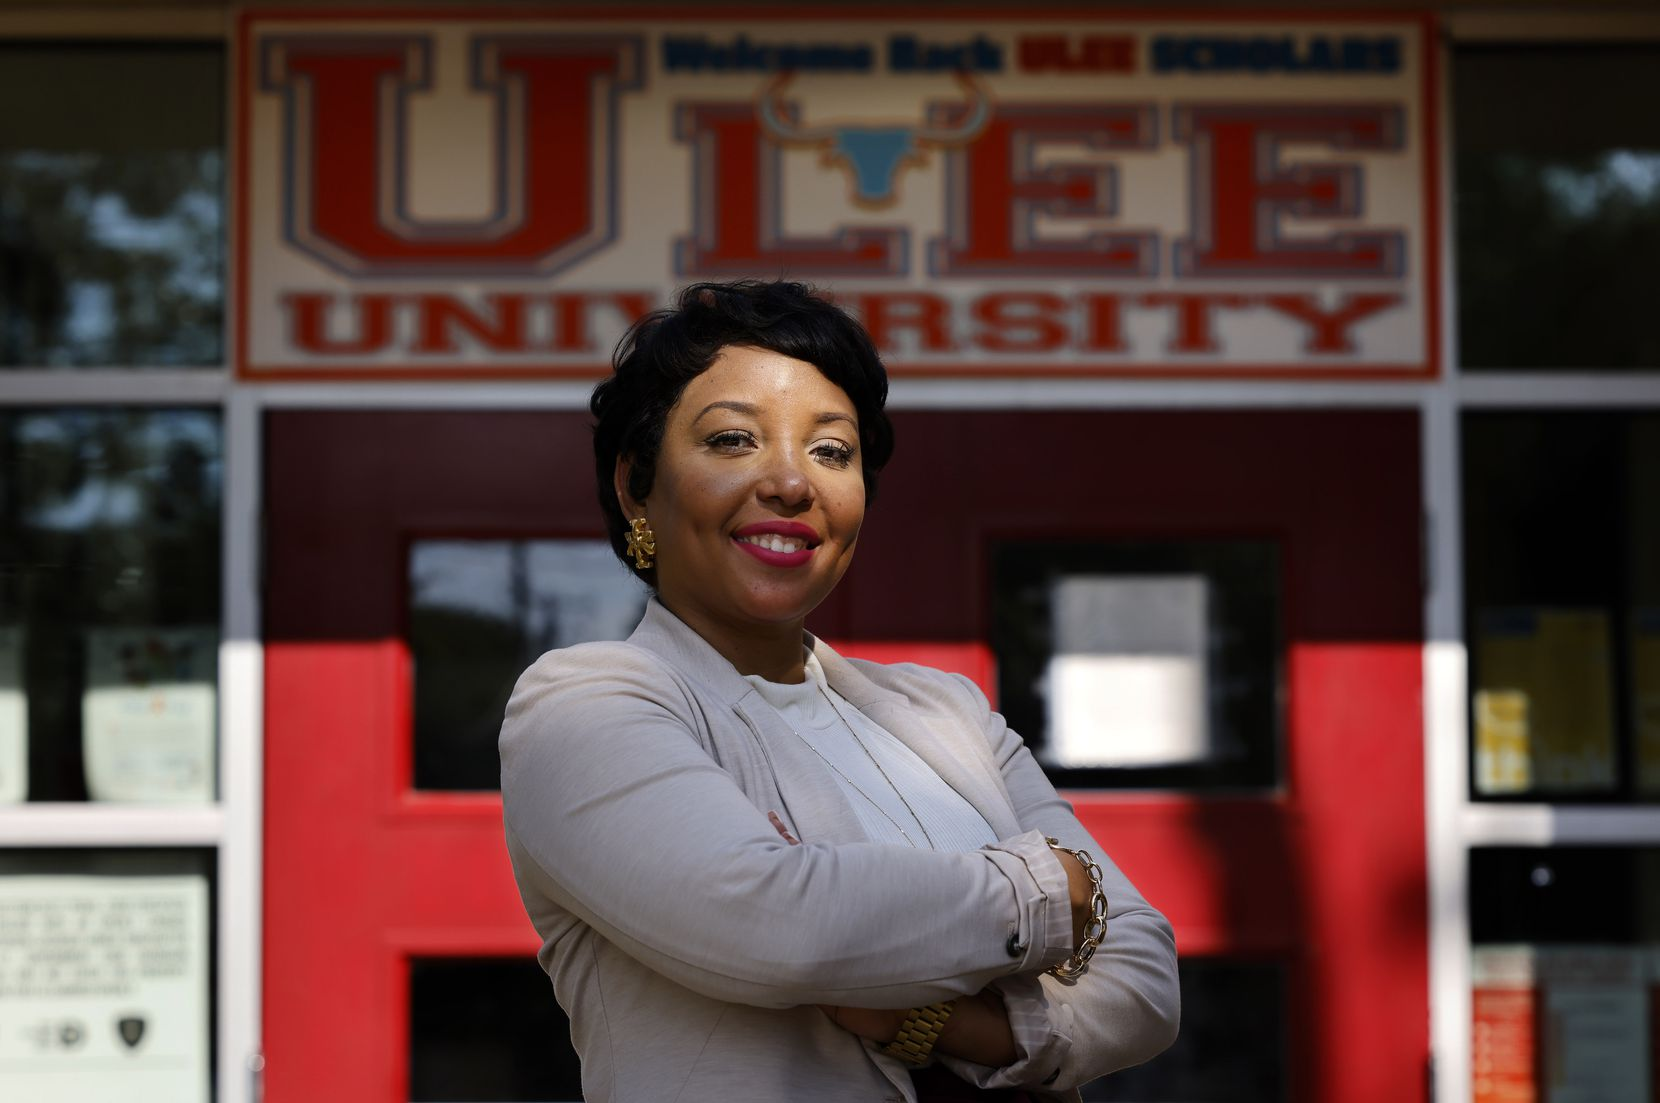 Stephanie McCloud became principal of Umphrey Lee Elementary the year it exited the ACE program. She immediately grappled with how to retain teachers and maintain momentum.